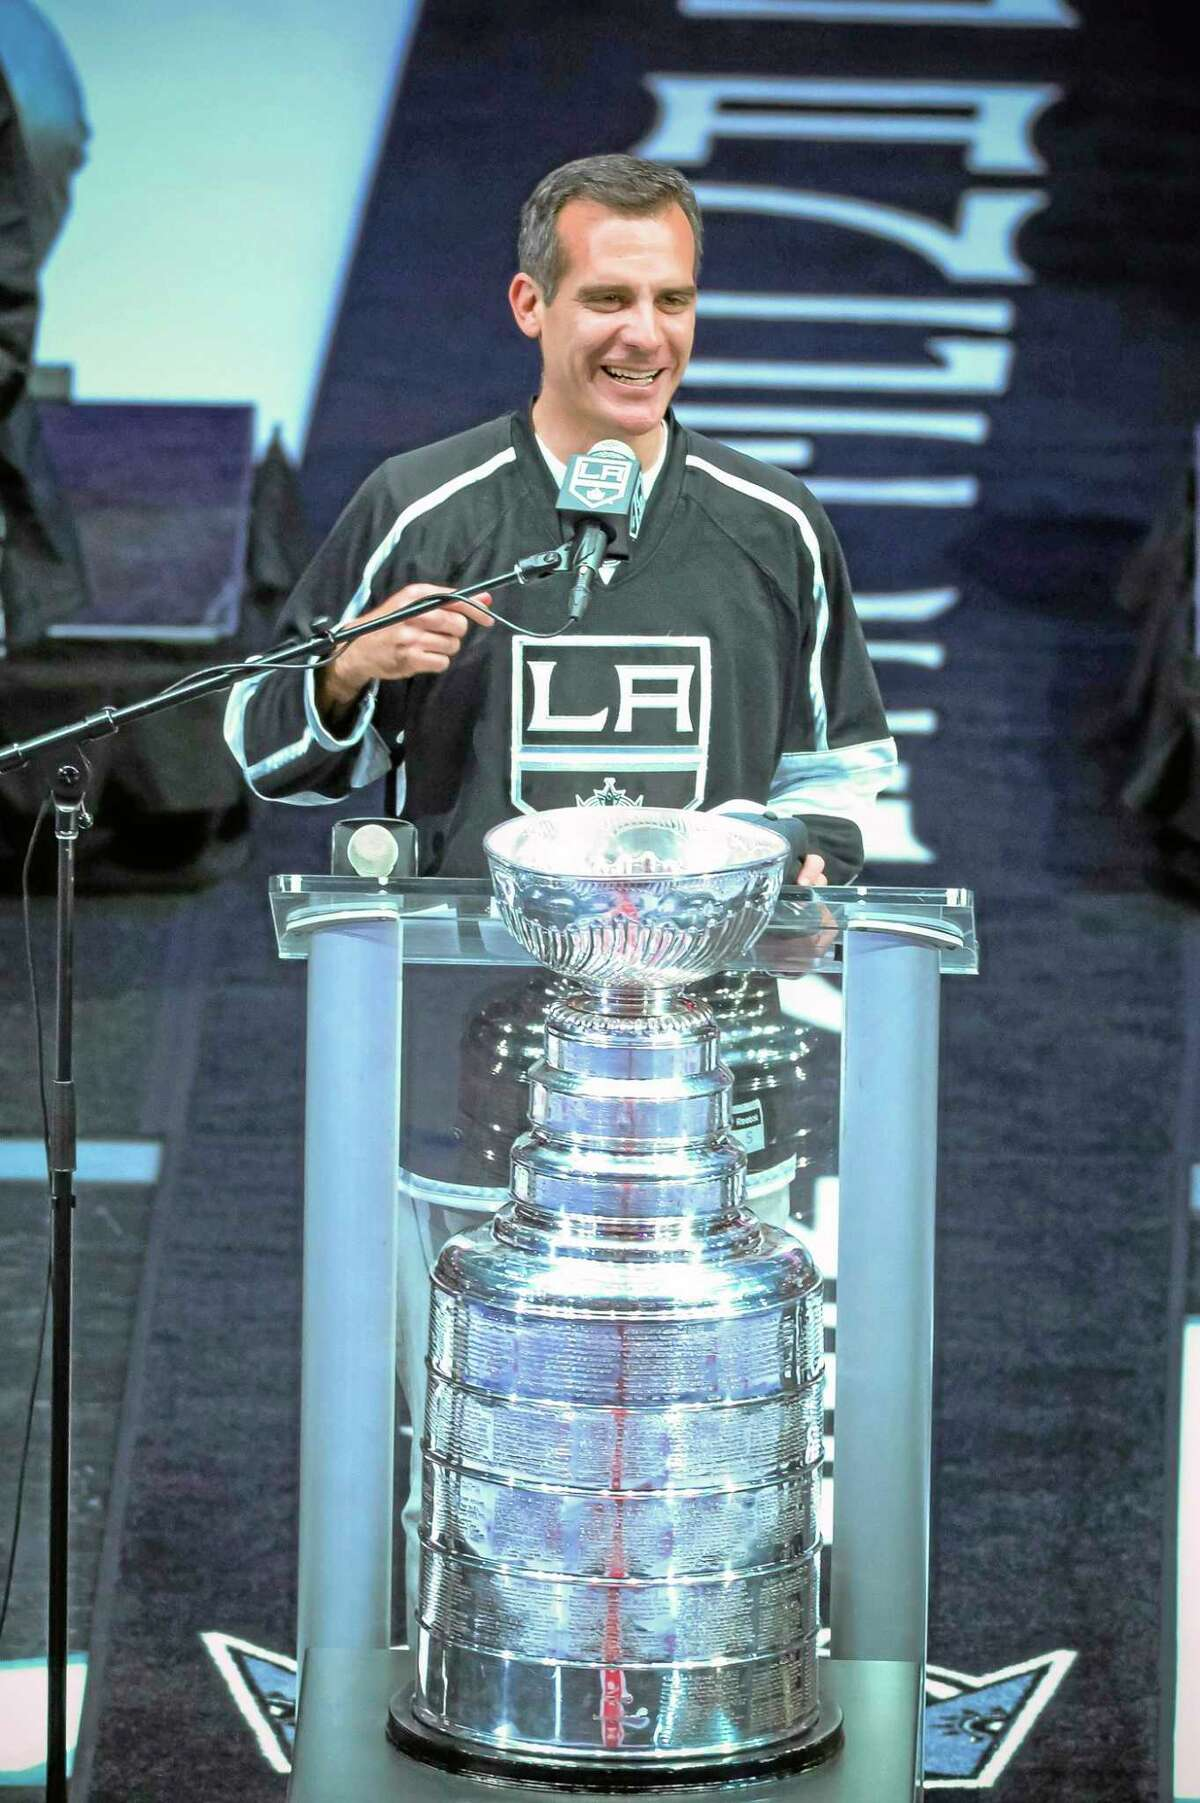 In this photo taken on Monday, Los Angeles Mayor Eric Garcetti talks to the crowd during the Los Angeles Kings' Stanley Cup championship rally at Staples Center. Mayor Garcetti used the F-bomb in declaring it a big day for LA, bringing 19,000 hockey fans to their feet, lighting up the Twitterverse in delight and leaving some folks scratching their heads, wondering just what the heck the normally soft-spoken elected official was thinking.